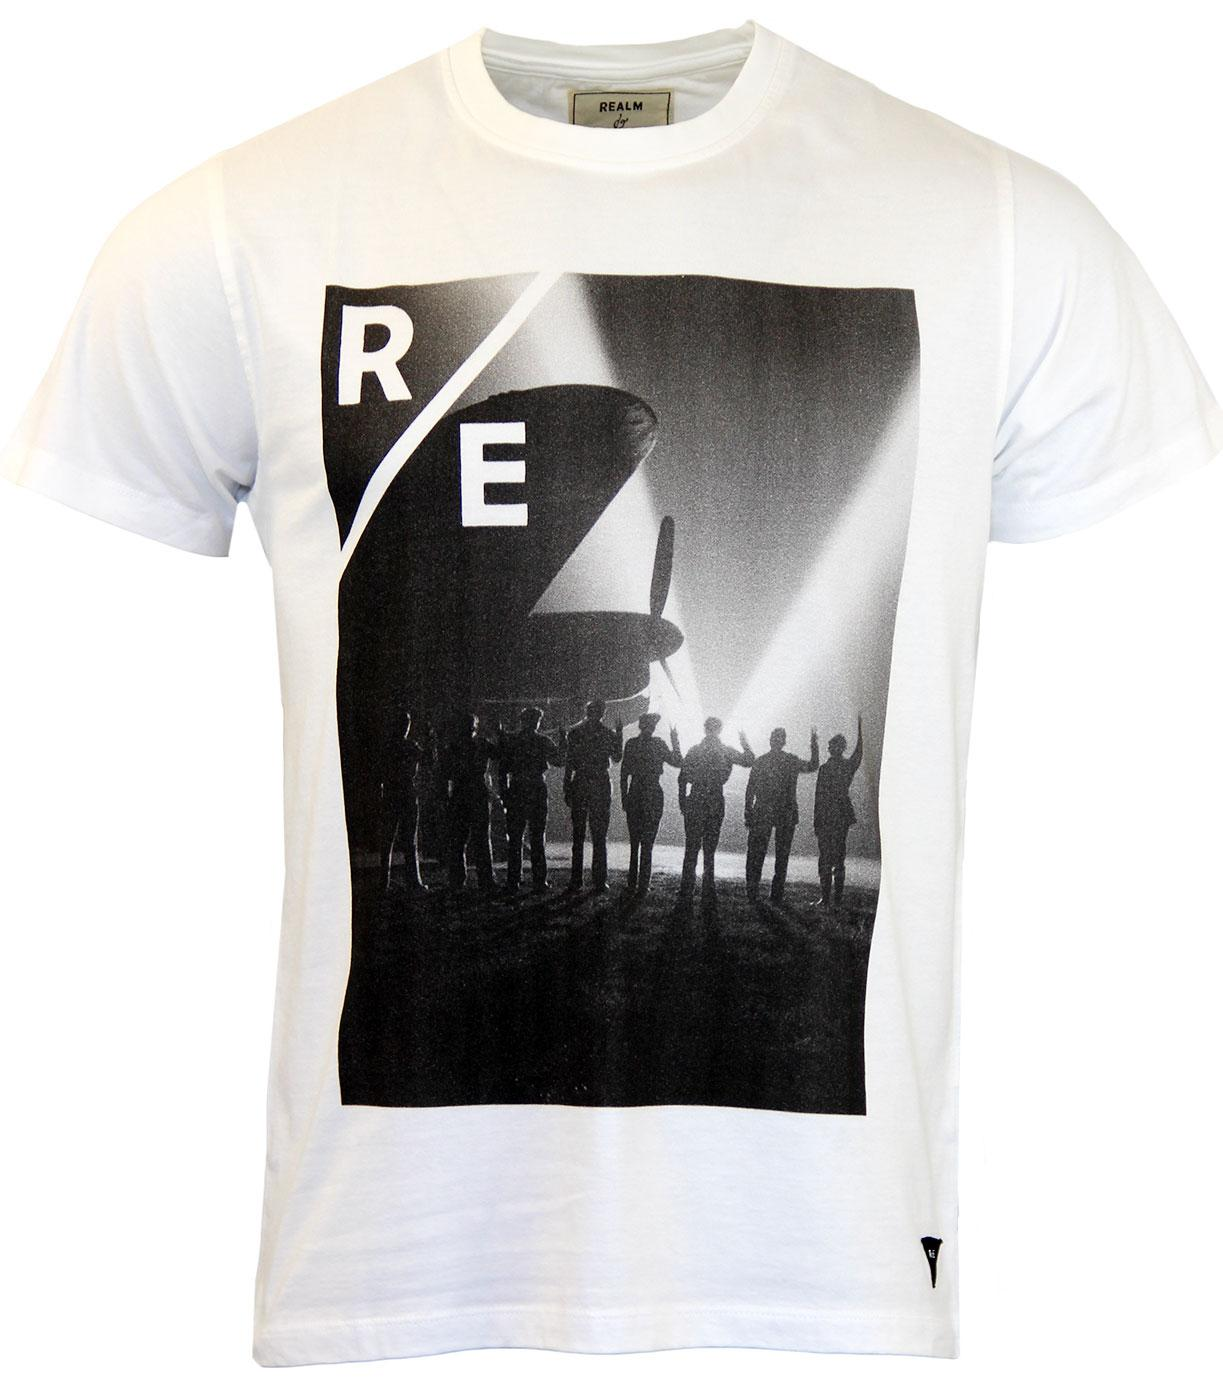 REALM & EMPIRE VE Day Vintage Photo Print T-shirt